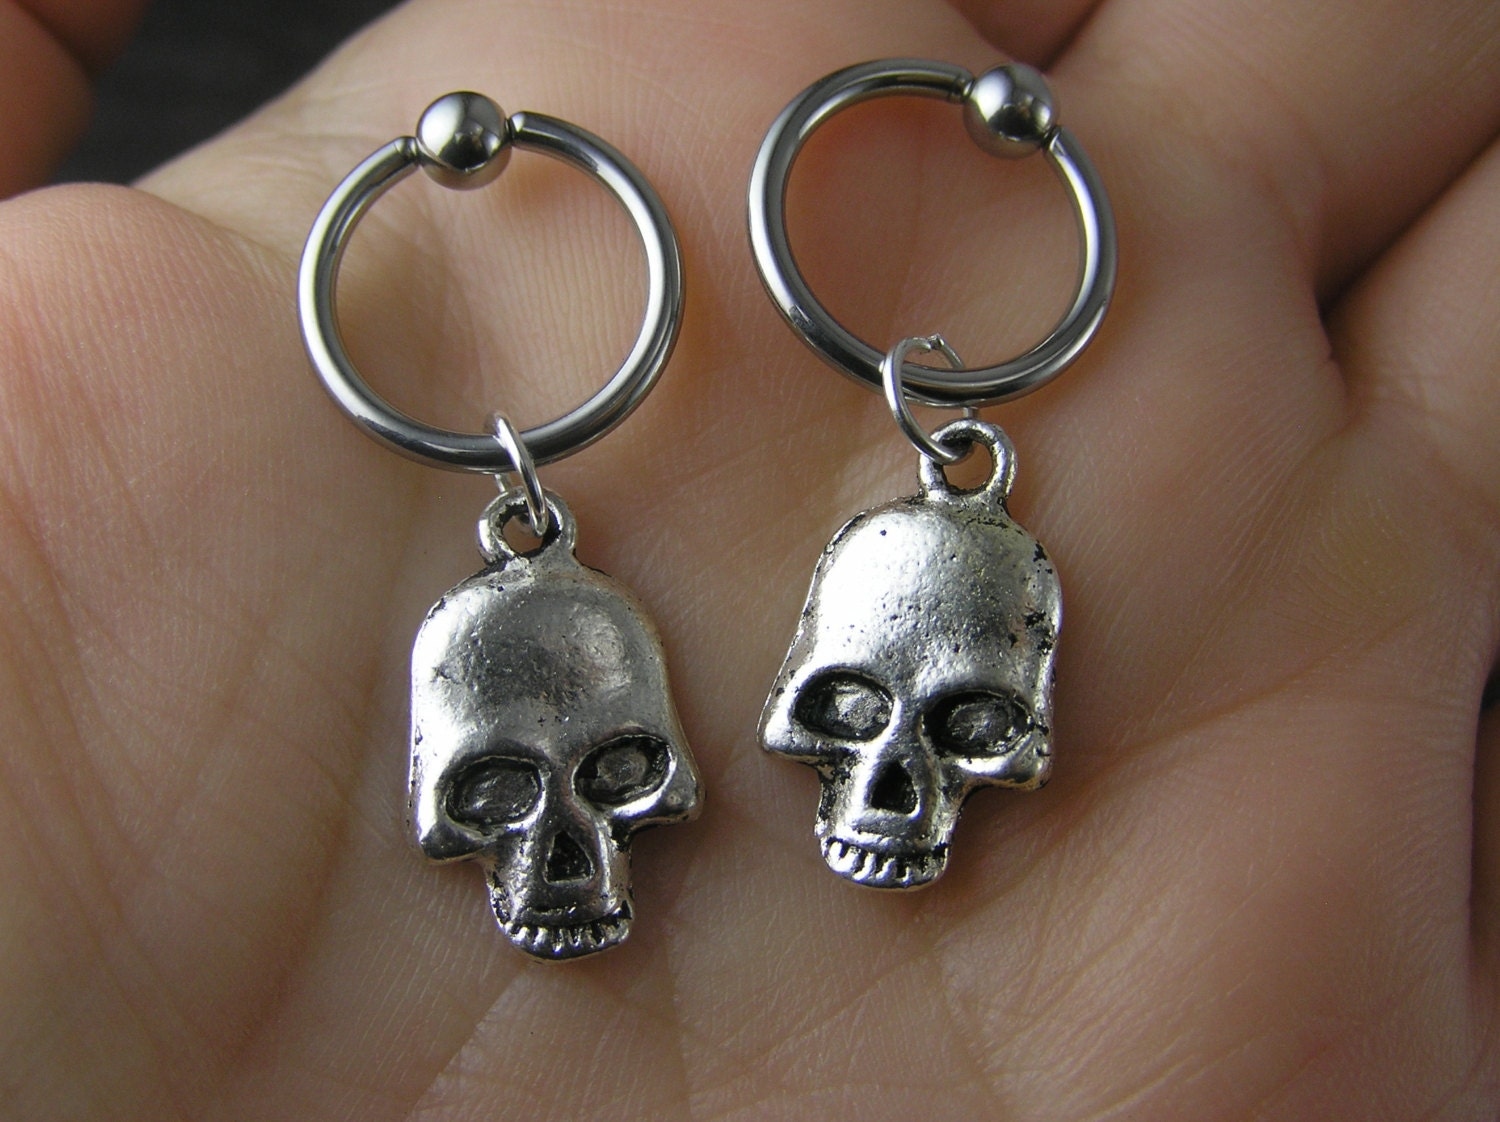 captive bead earrings one silver skull captive bead ring earring 12g 14g 16g 18g 6047